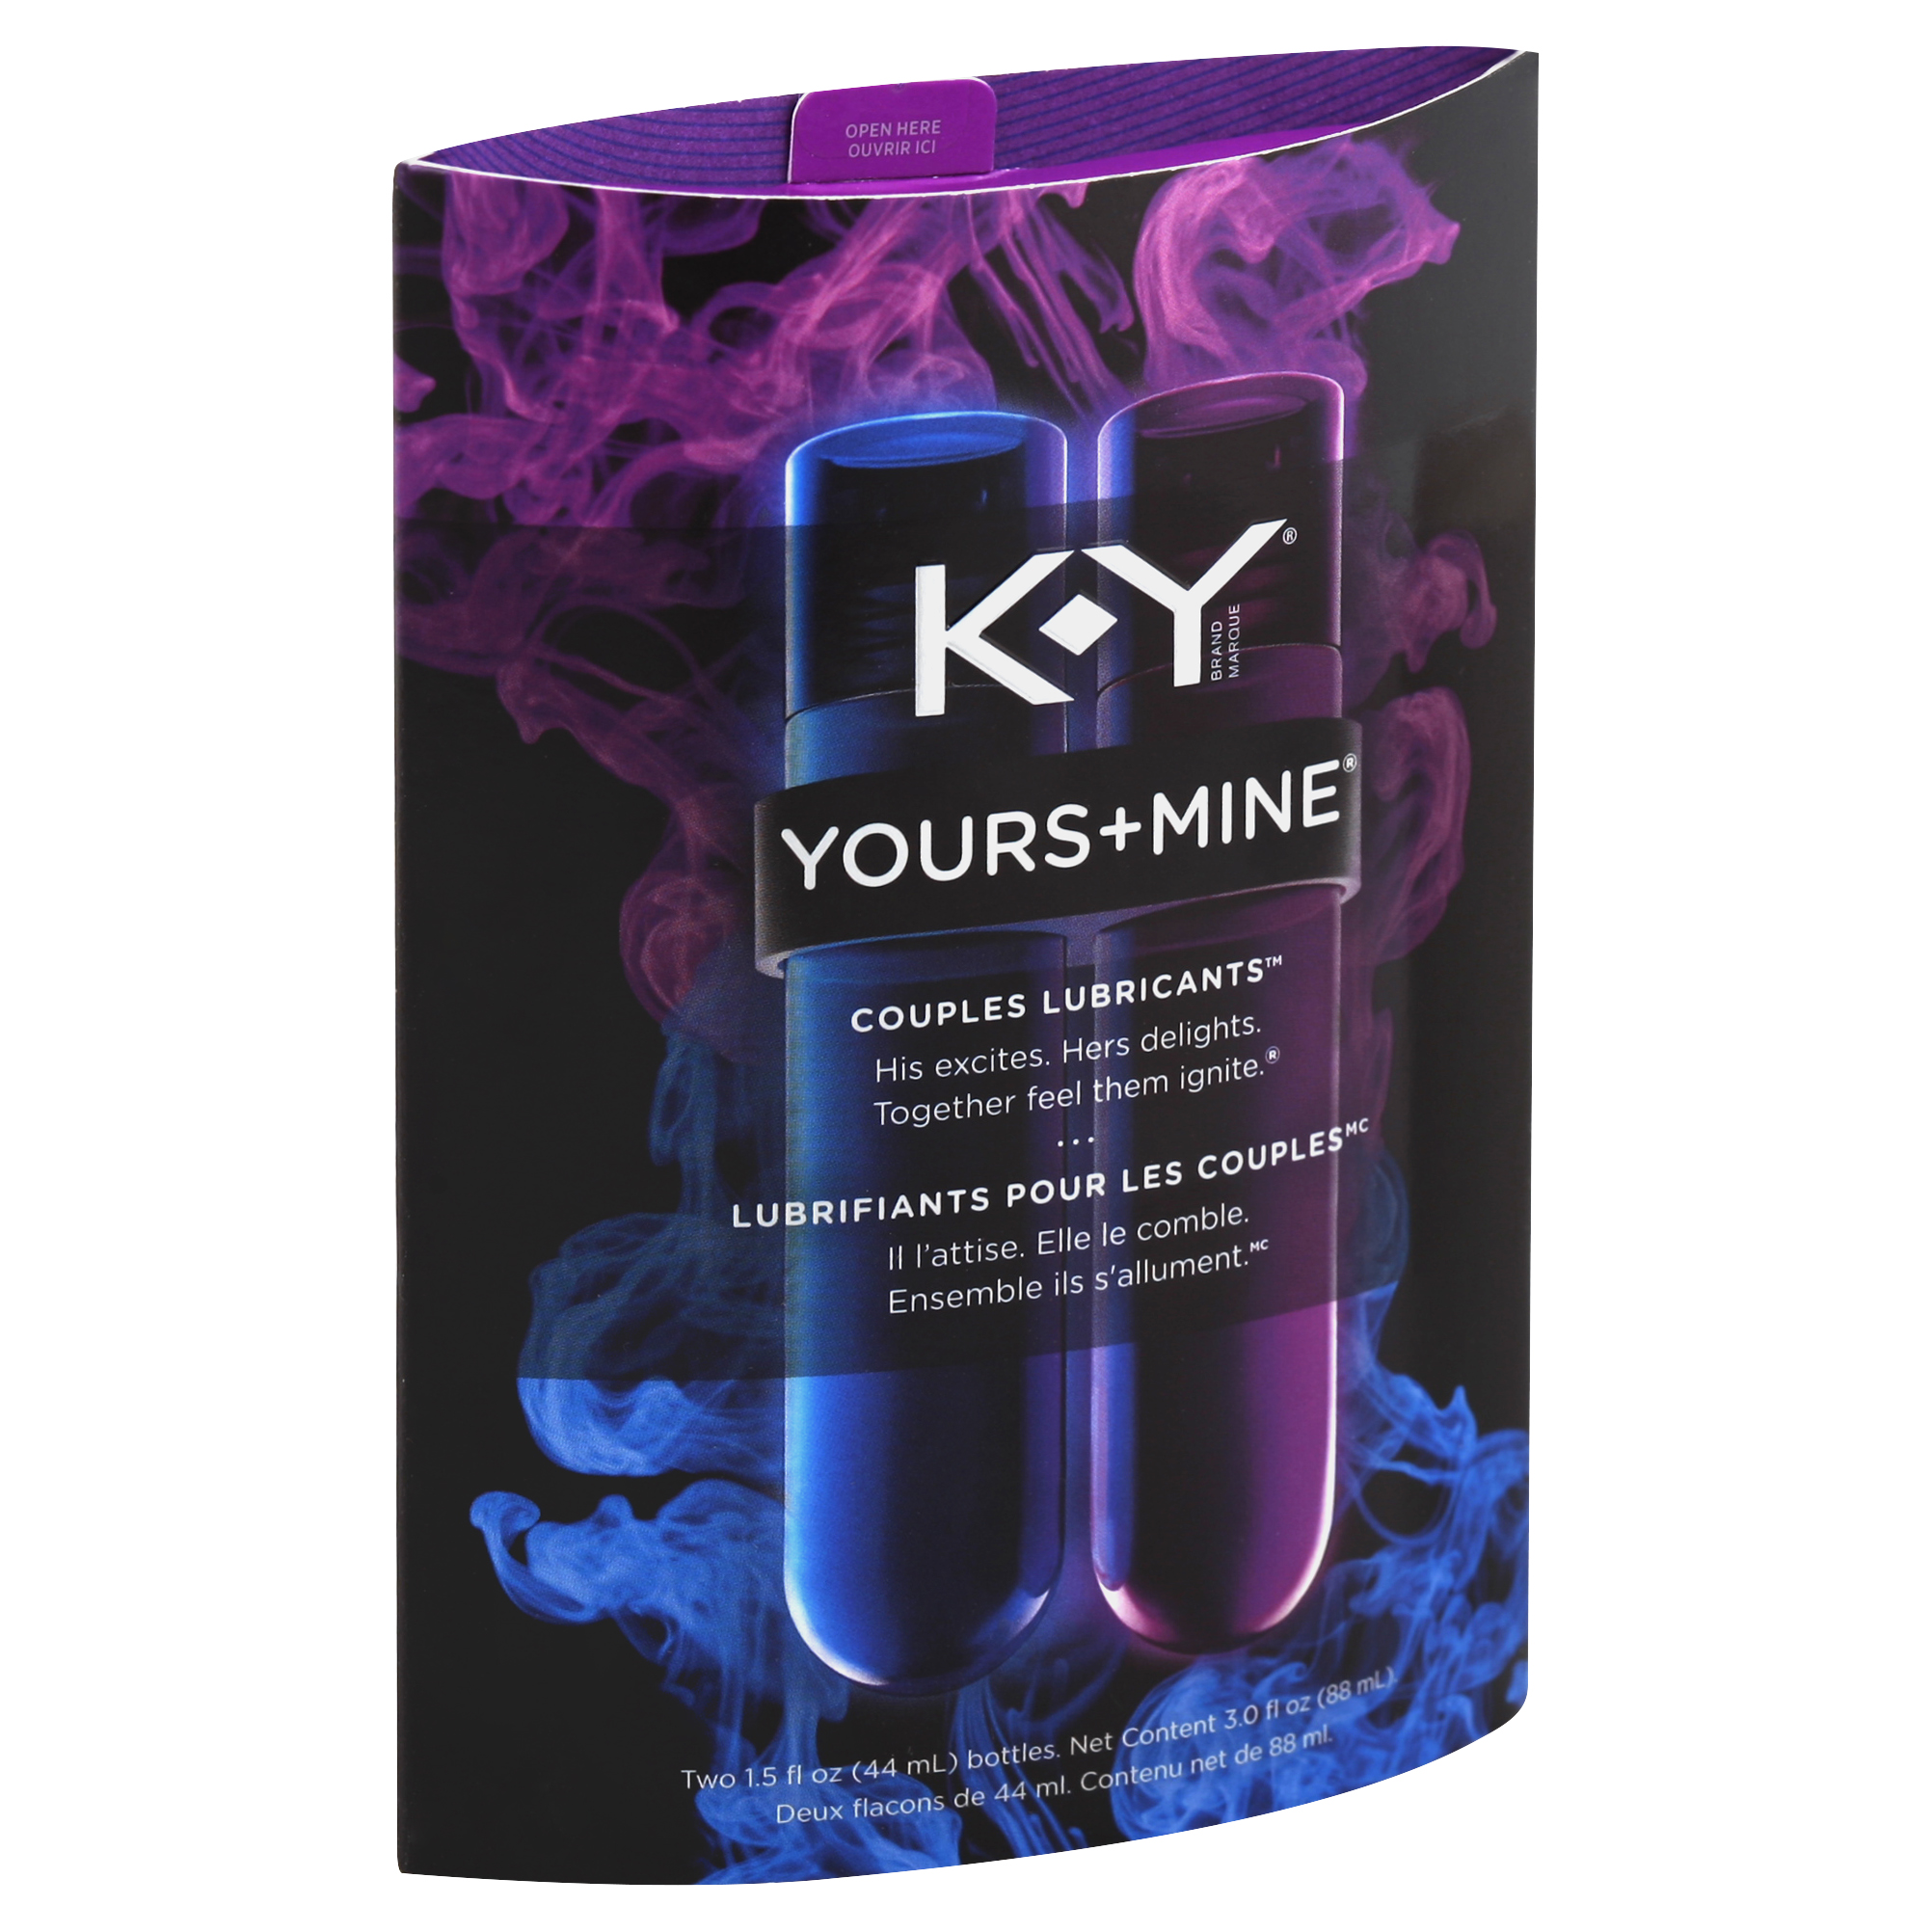 K-Y Yours + Mine Couples Personal Lubricants, 3.0 Ounce